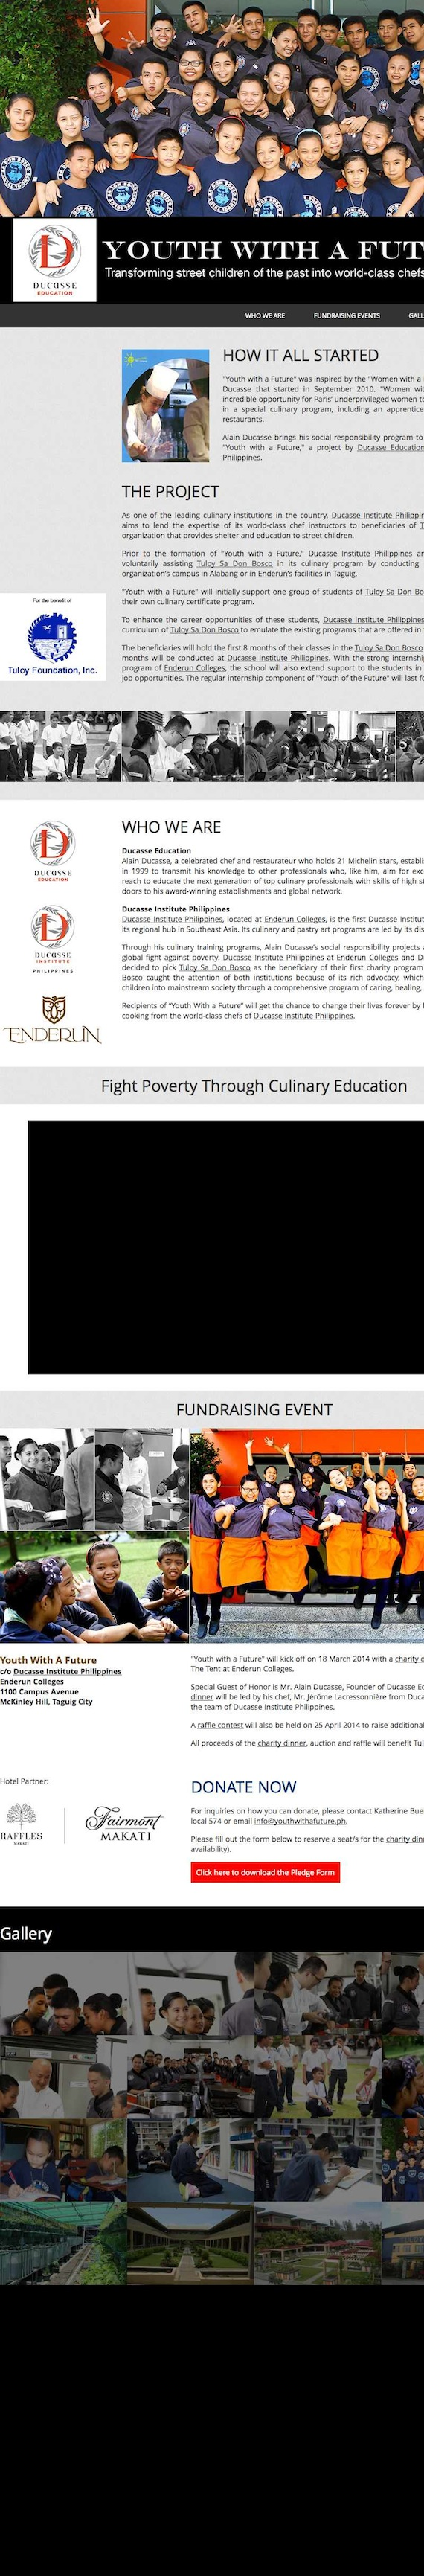 youth-with-a-future-transforming-street-children-of-the-past-into-world-class-chefs-of-the-future-20140713.jpg